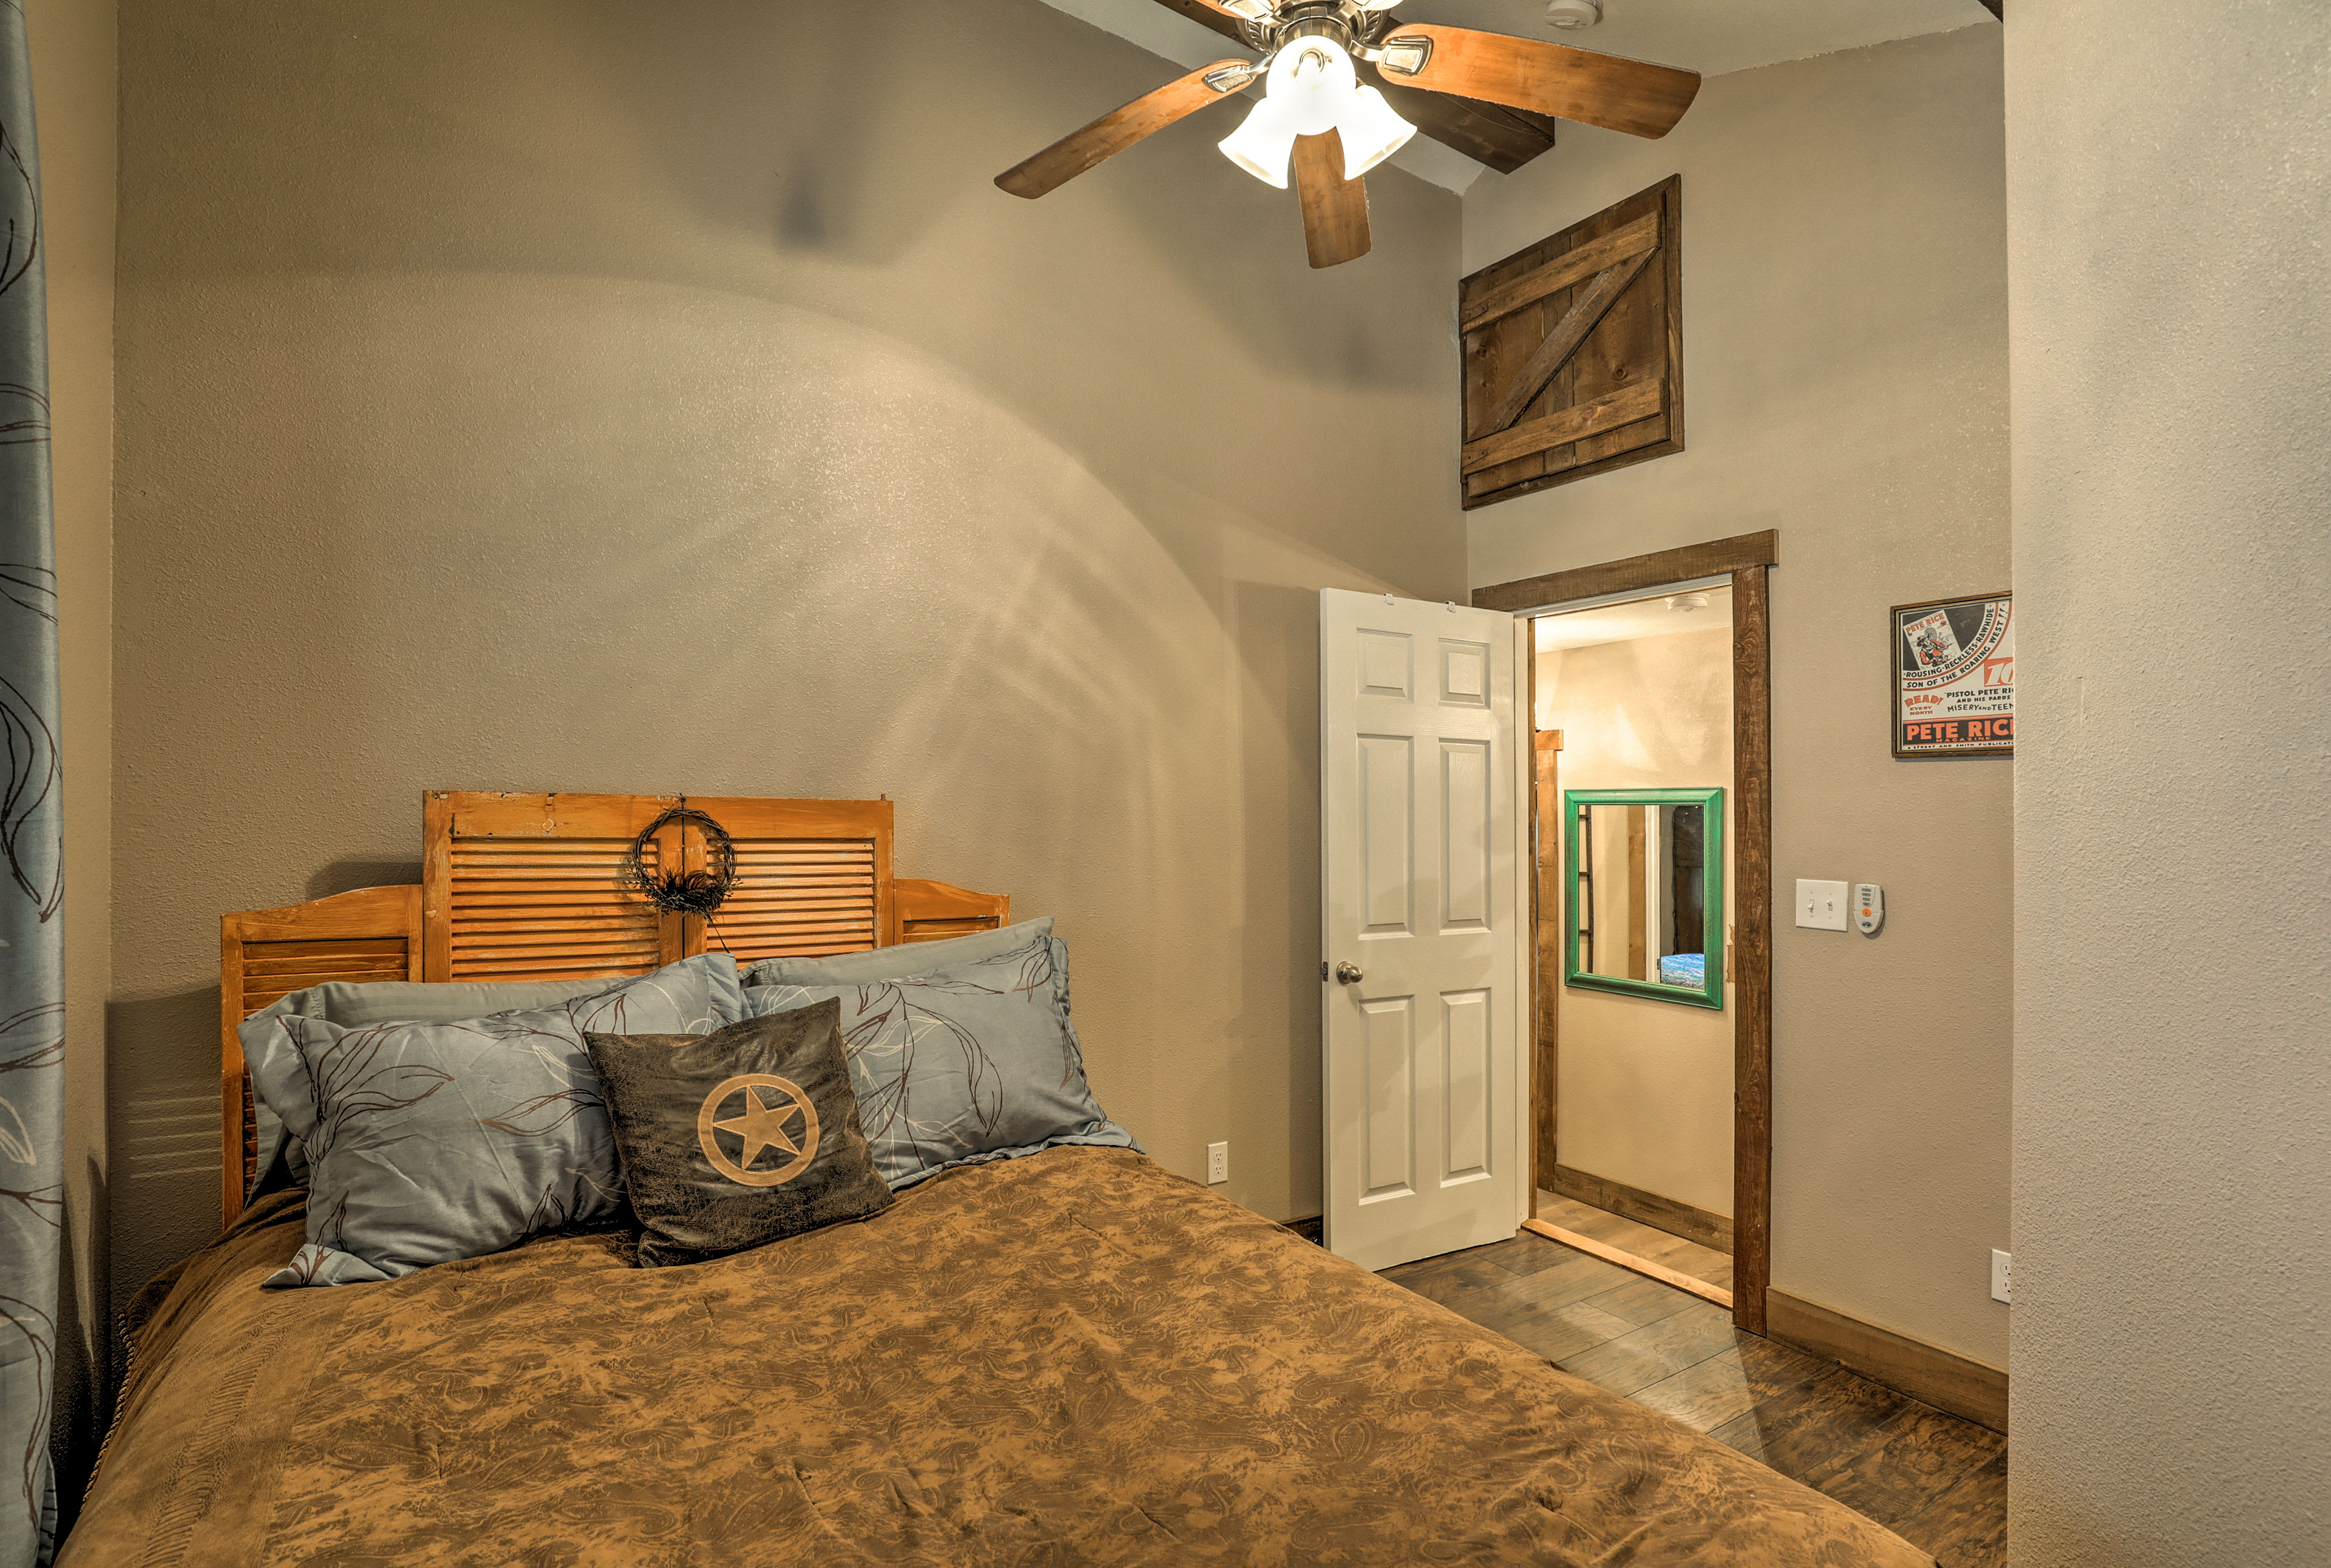 Two othe travelers can claim this second queen bedroom.